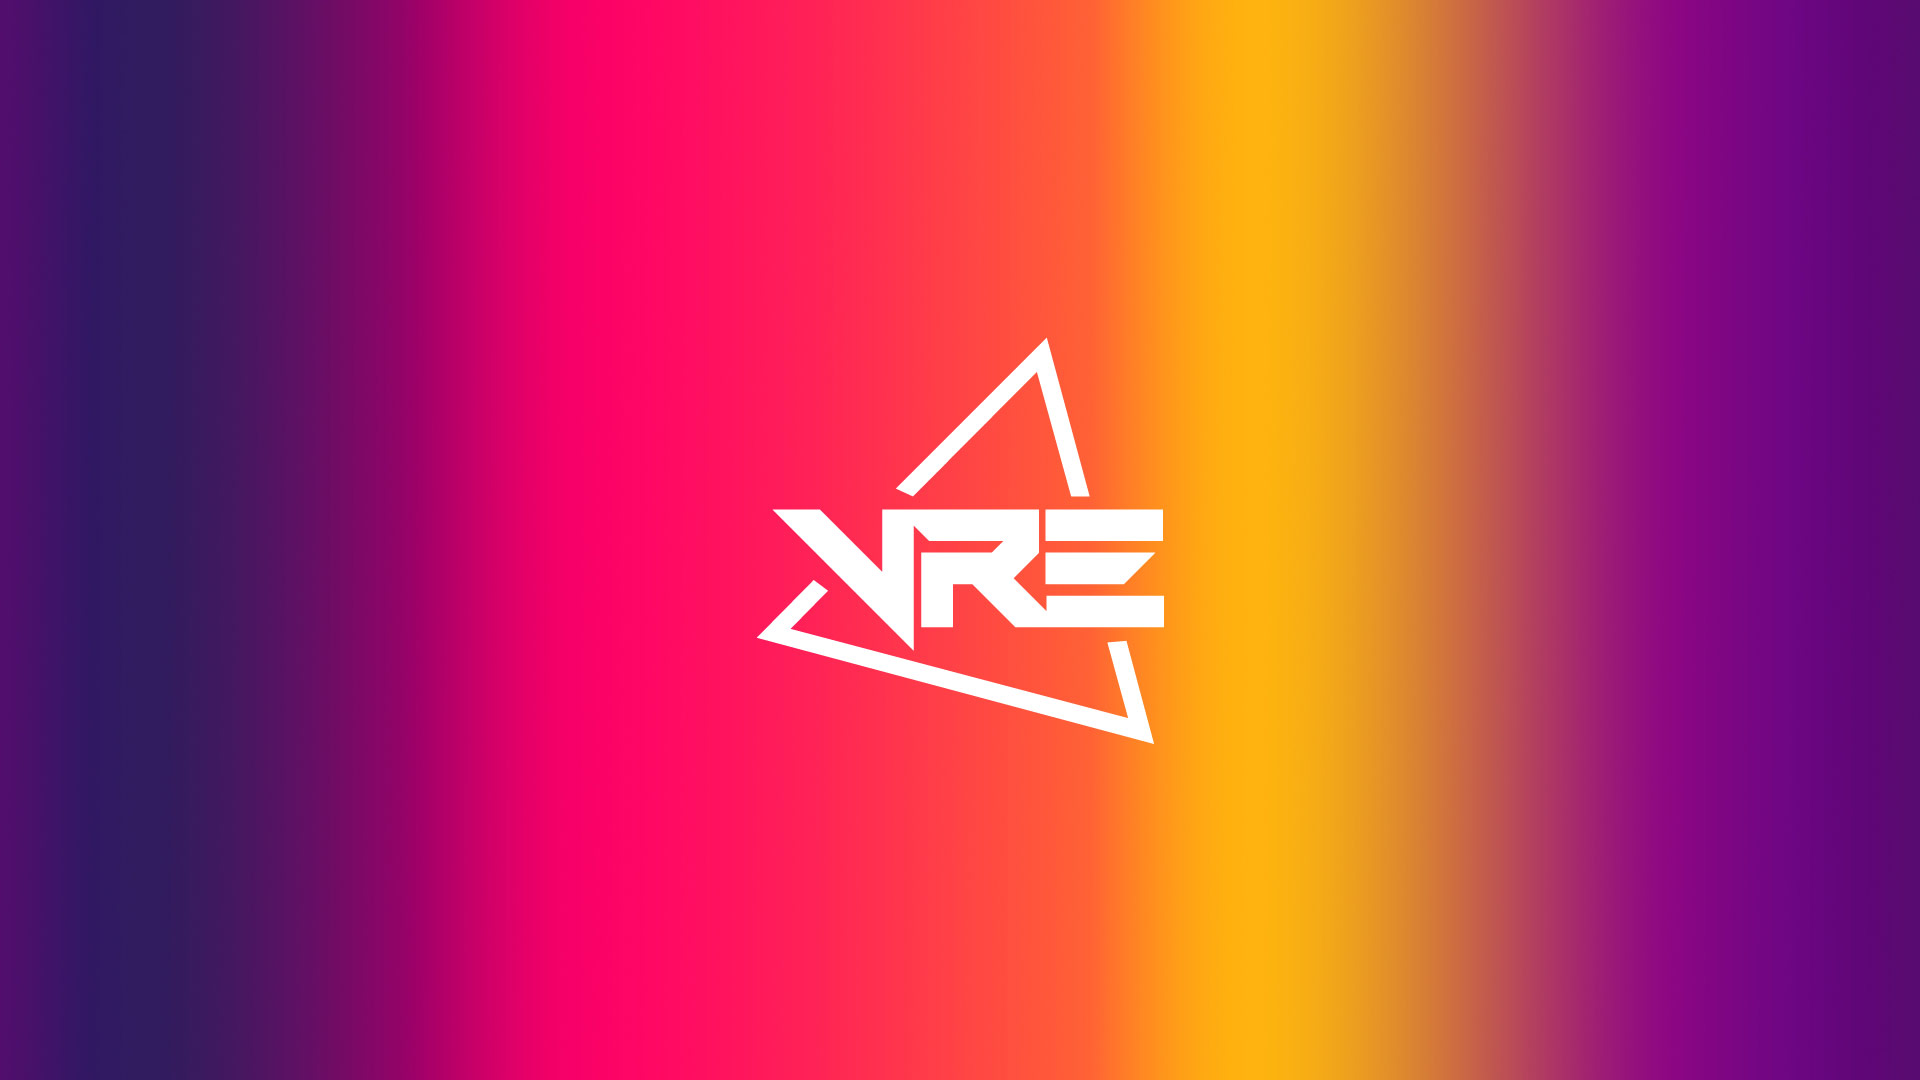 VRE – Virtual Reality Experience